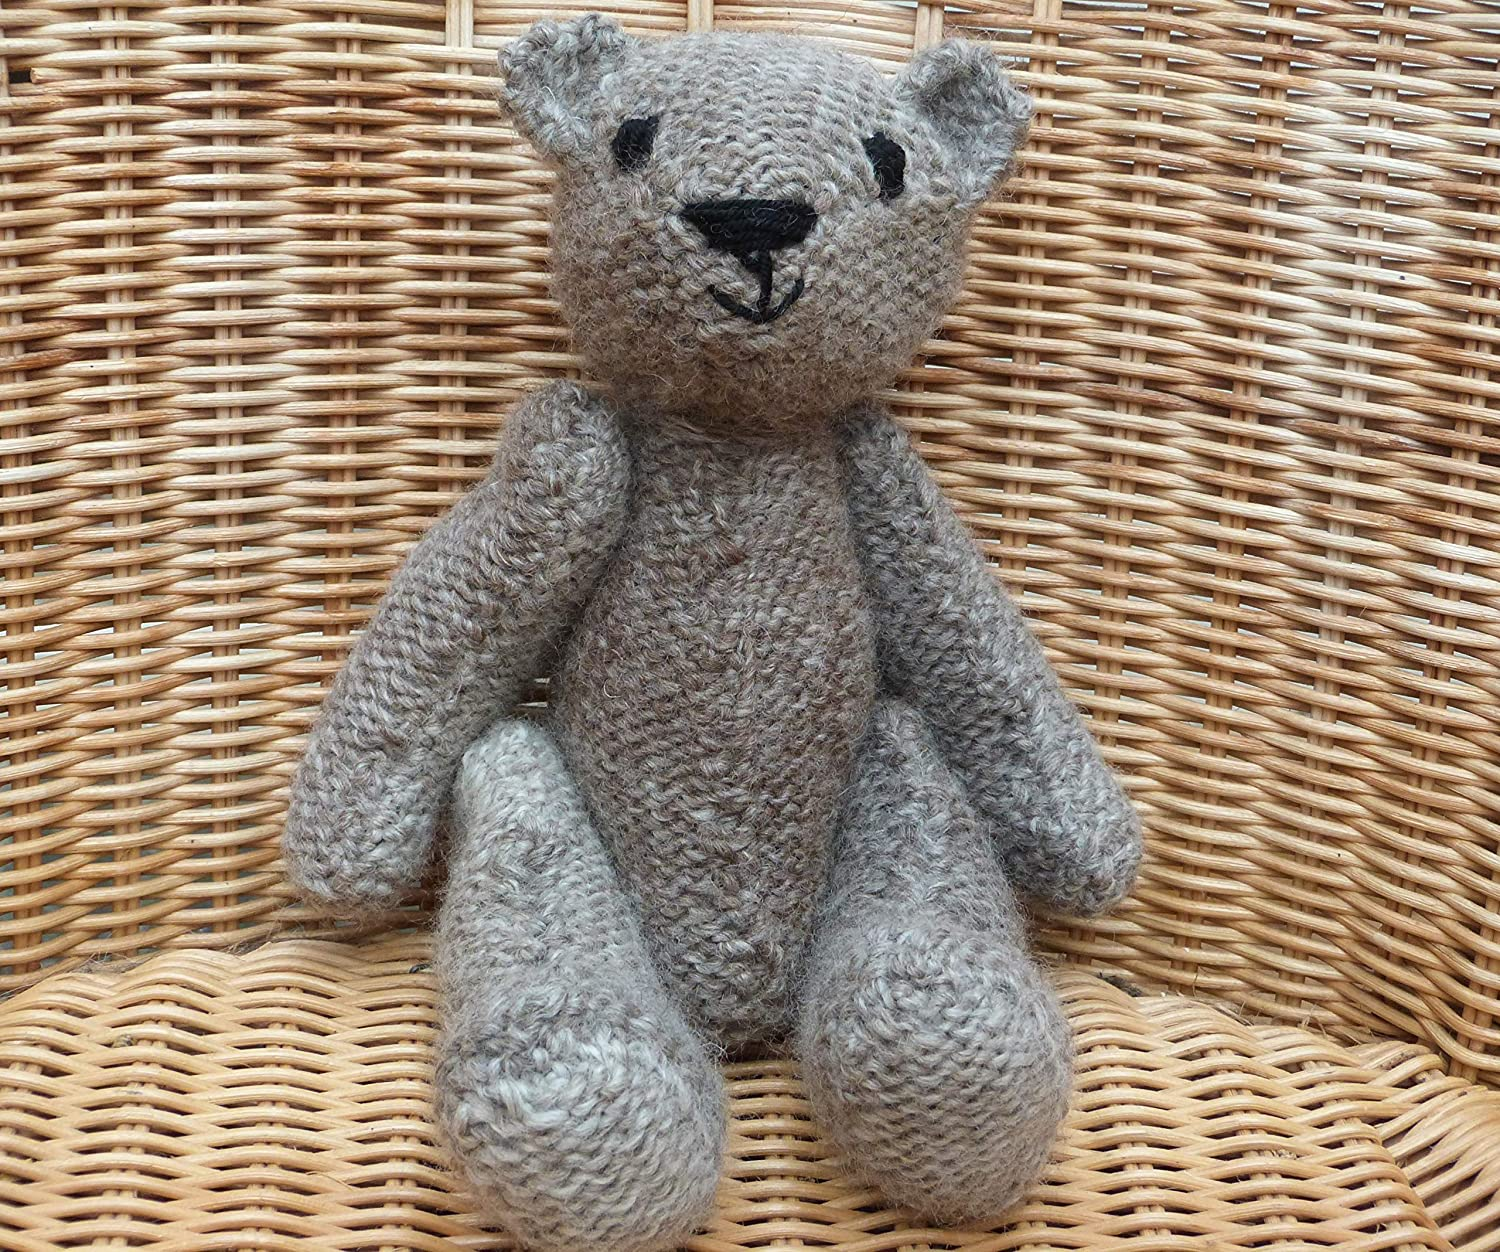 Vintage-Style Bear Great British HandmadeTeddy Bear Traditional Bear Grey Teddy Bear 8 Teddy Bear Hand Knitted Bear with Wool Rompers